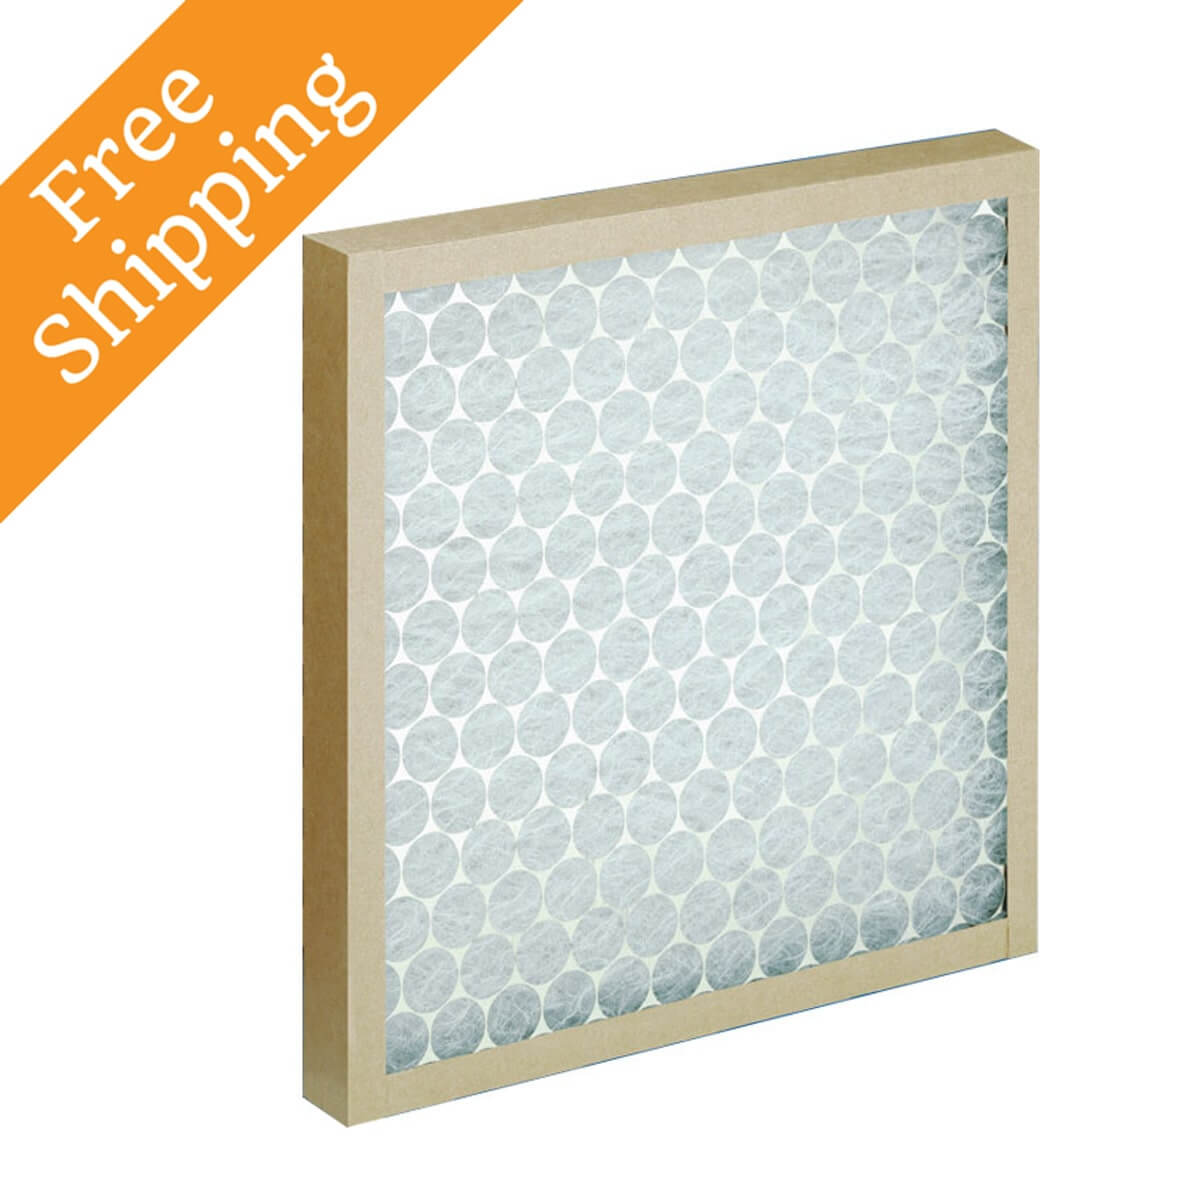 Glasfloss 14x14x1 Air Filter PTA Series